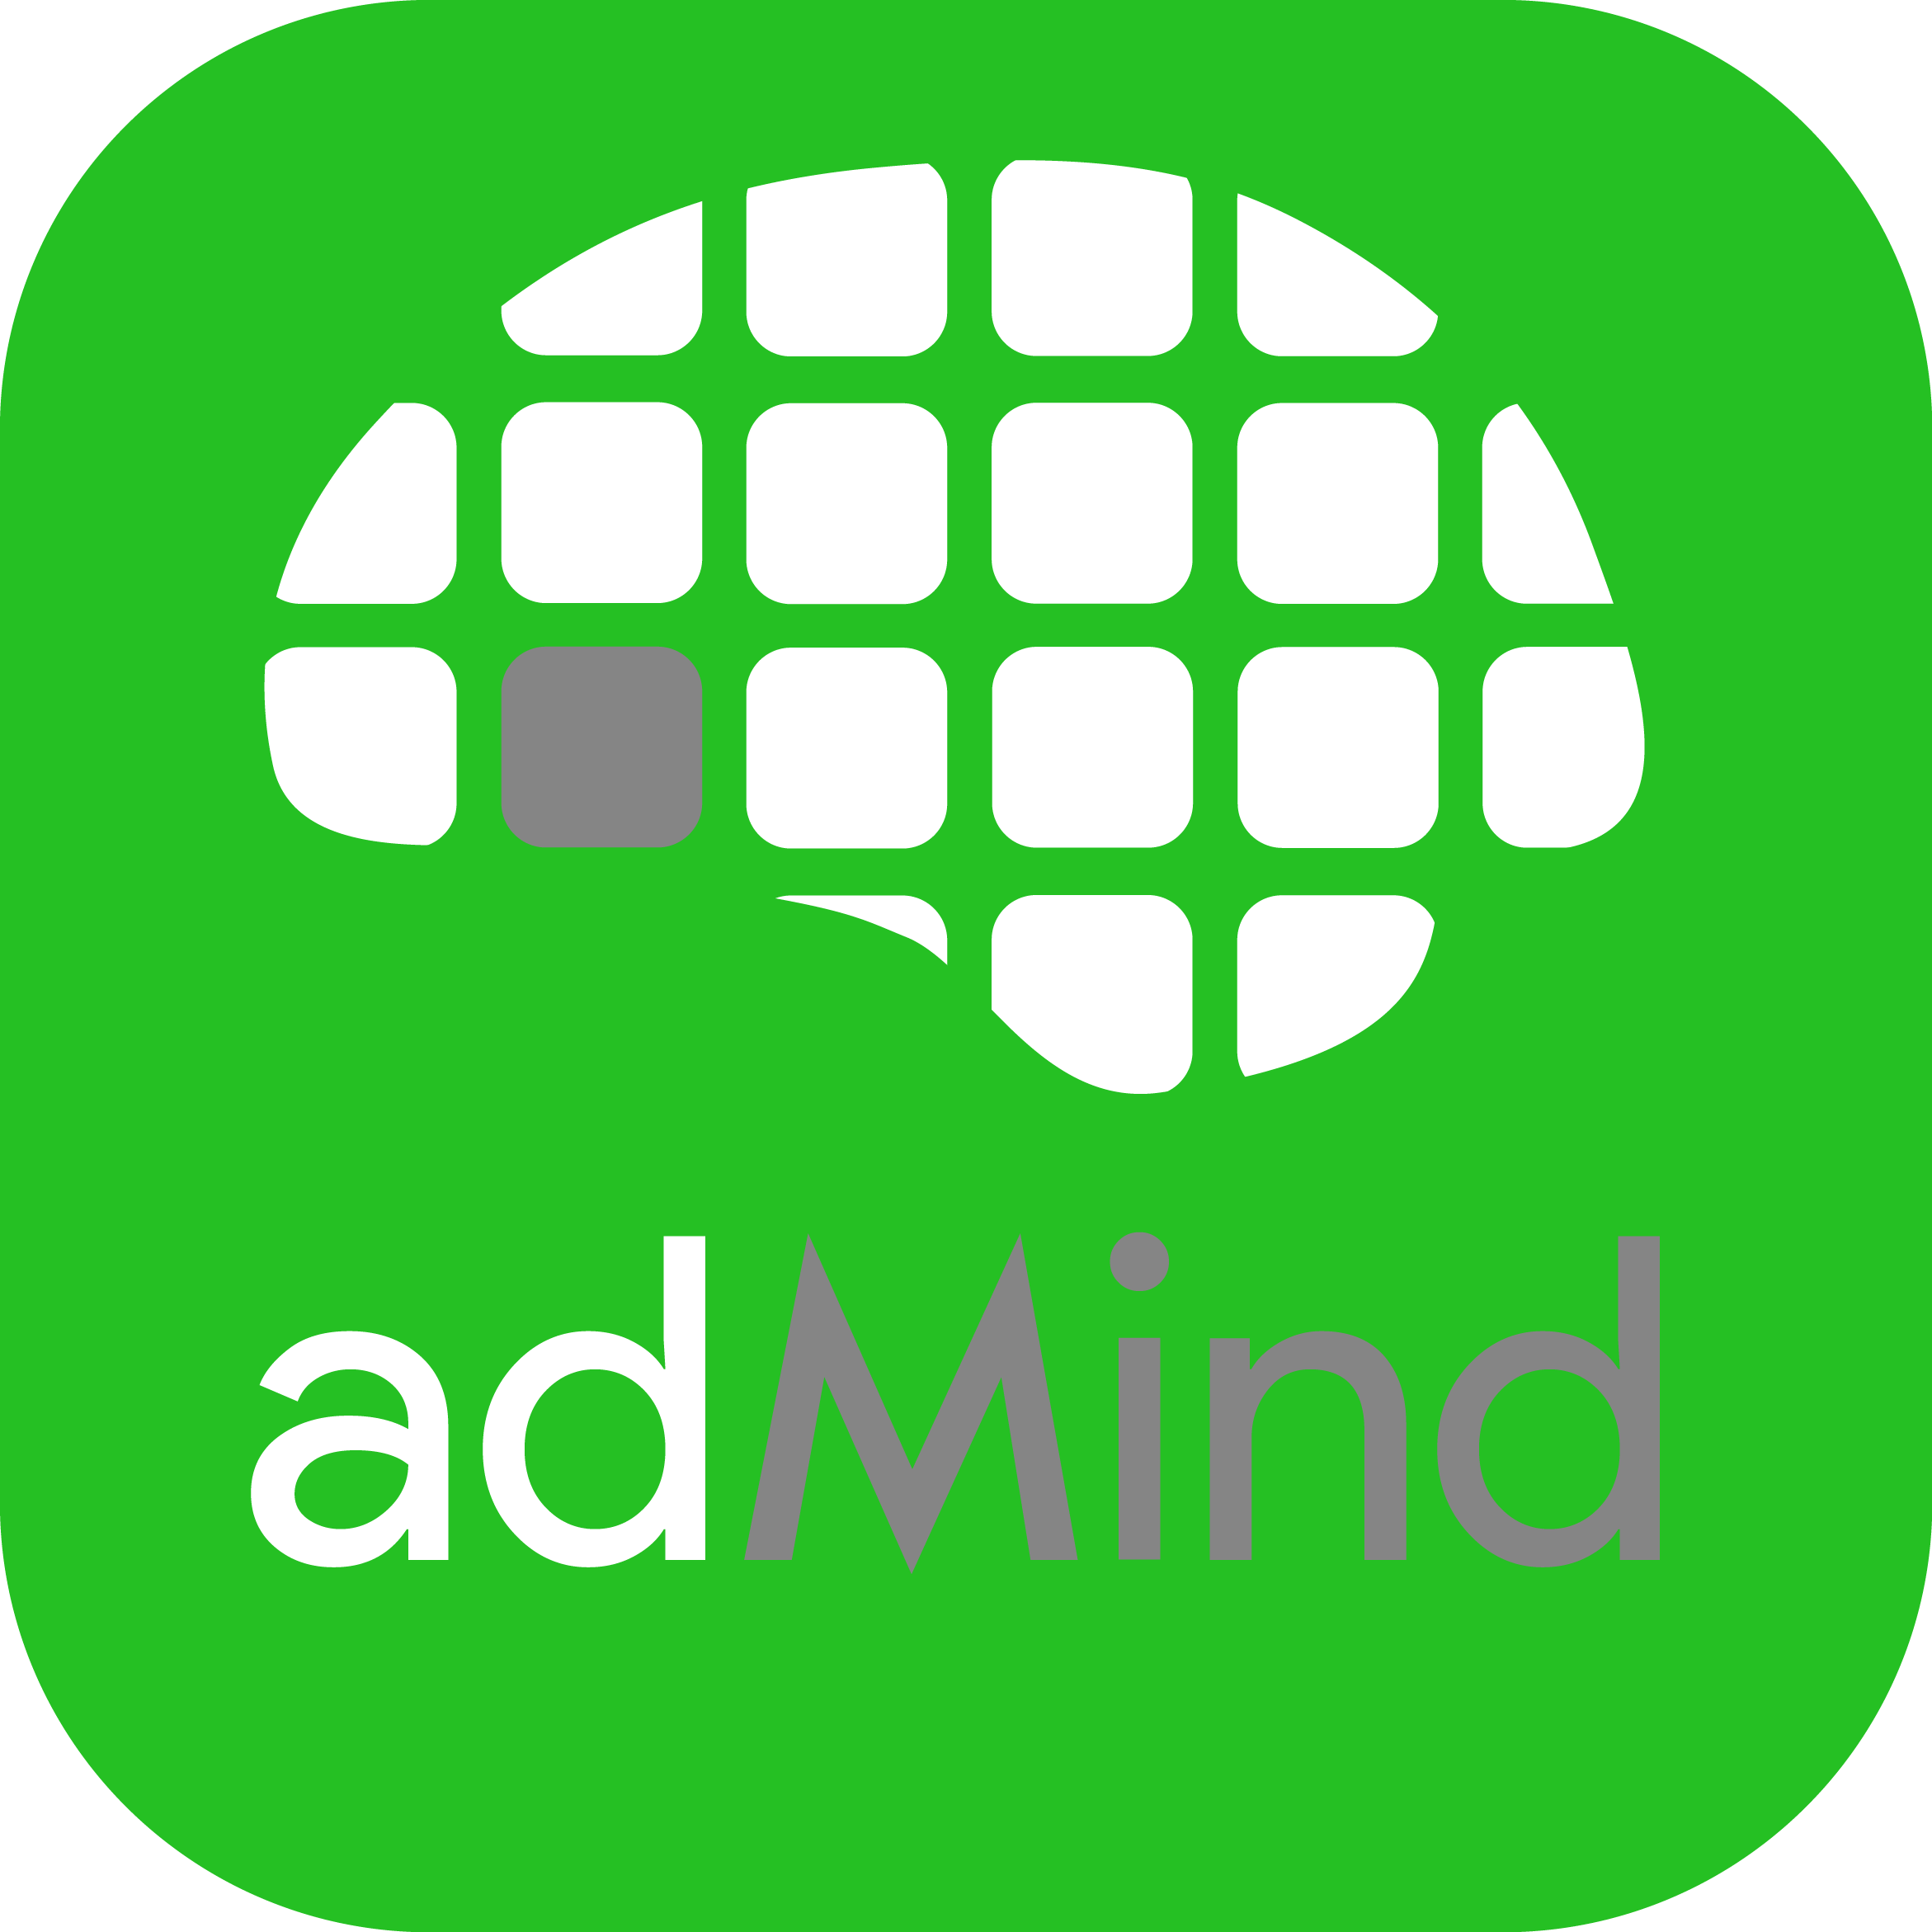 admind logo green app square